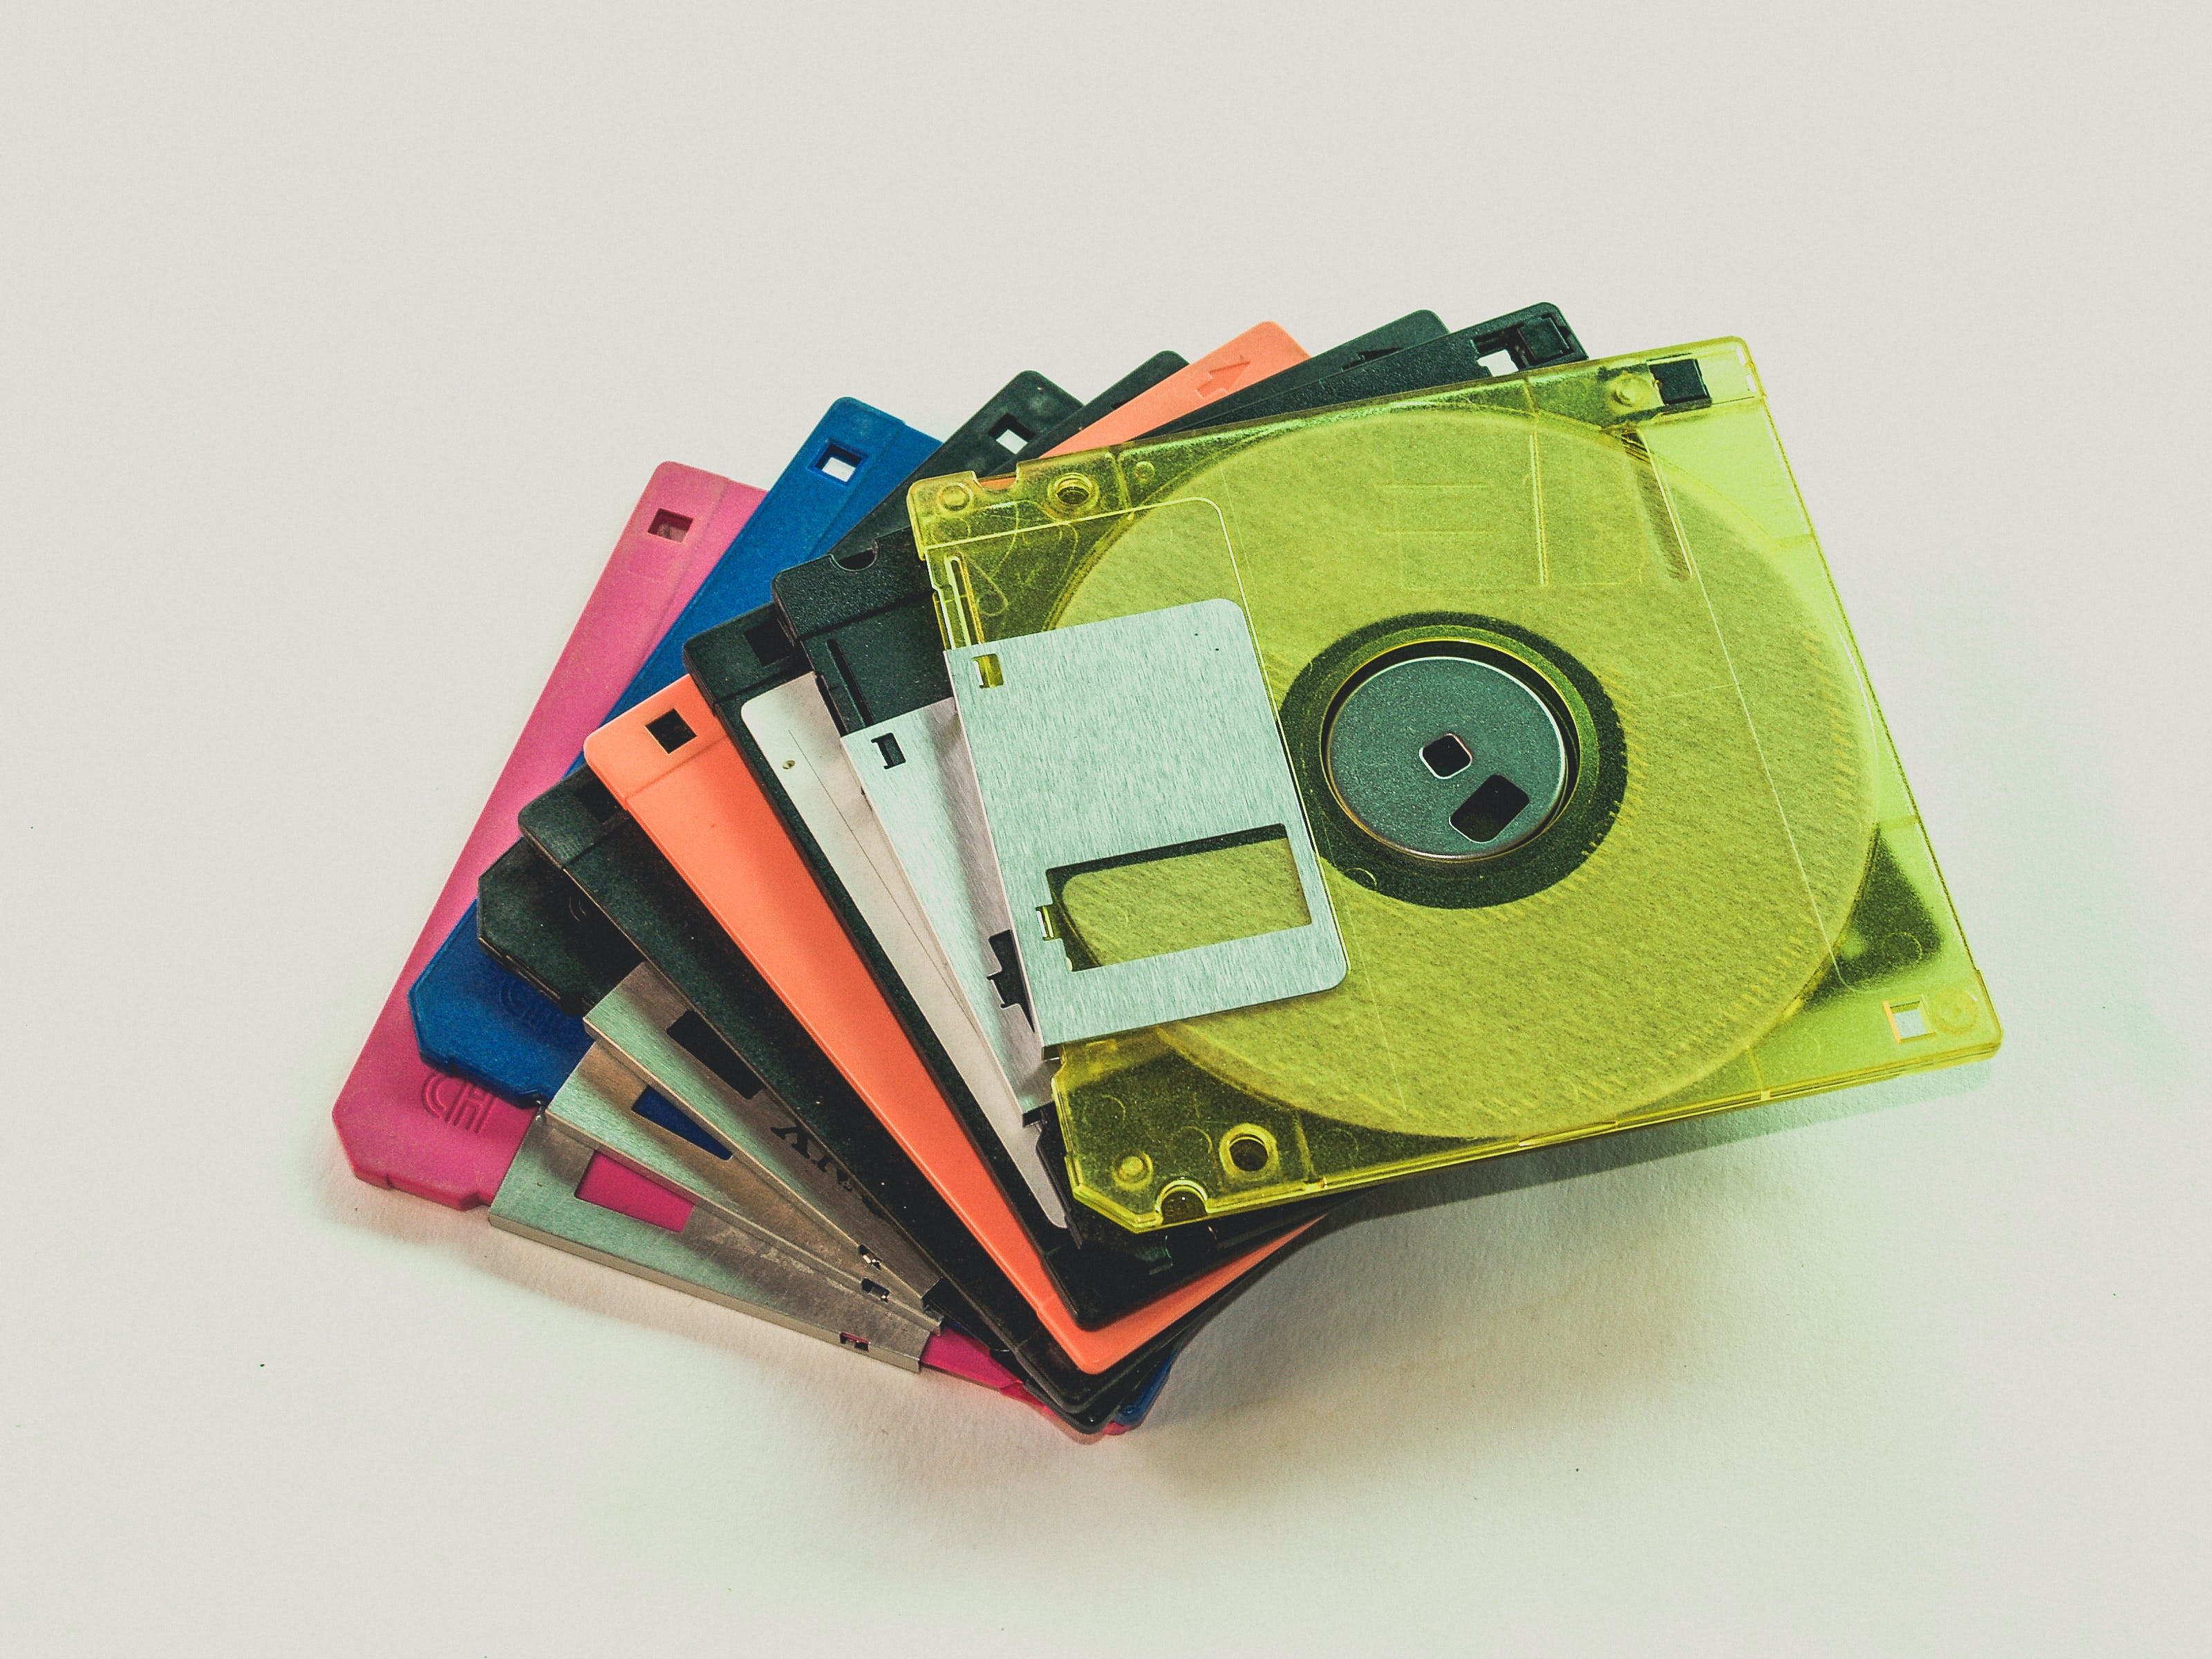 Floppy Disk Lot on White Surface